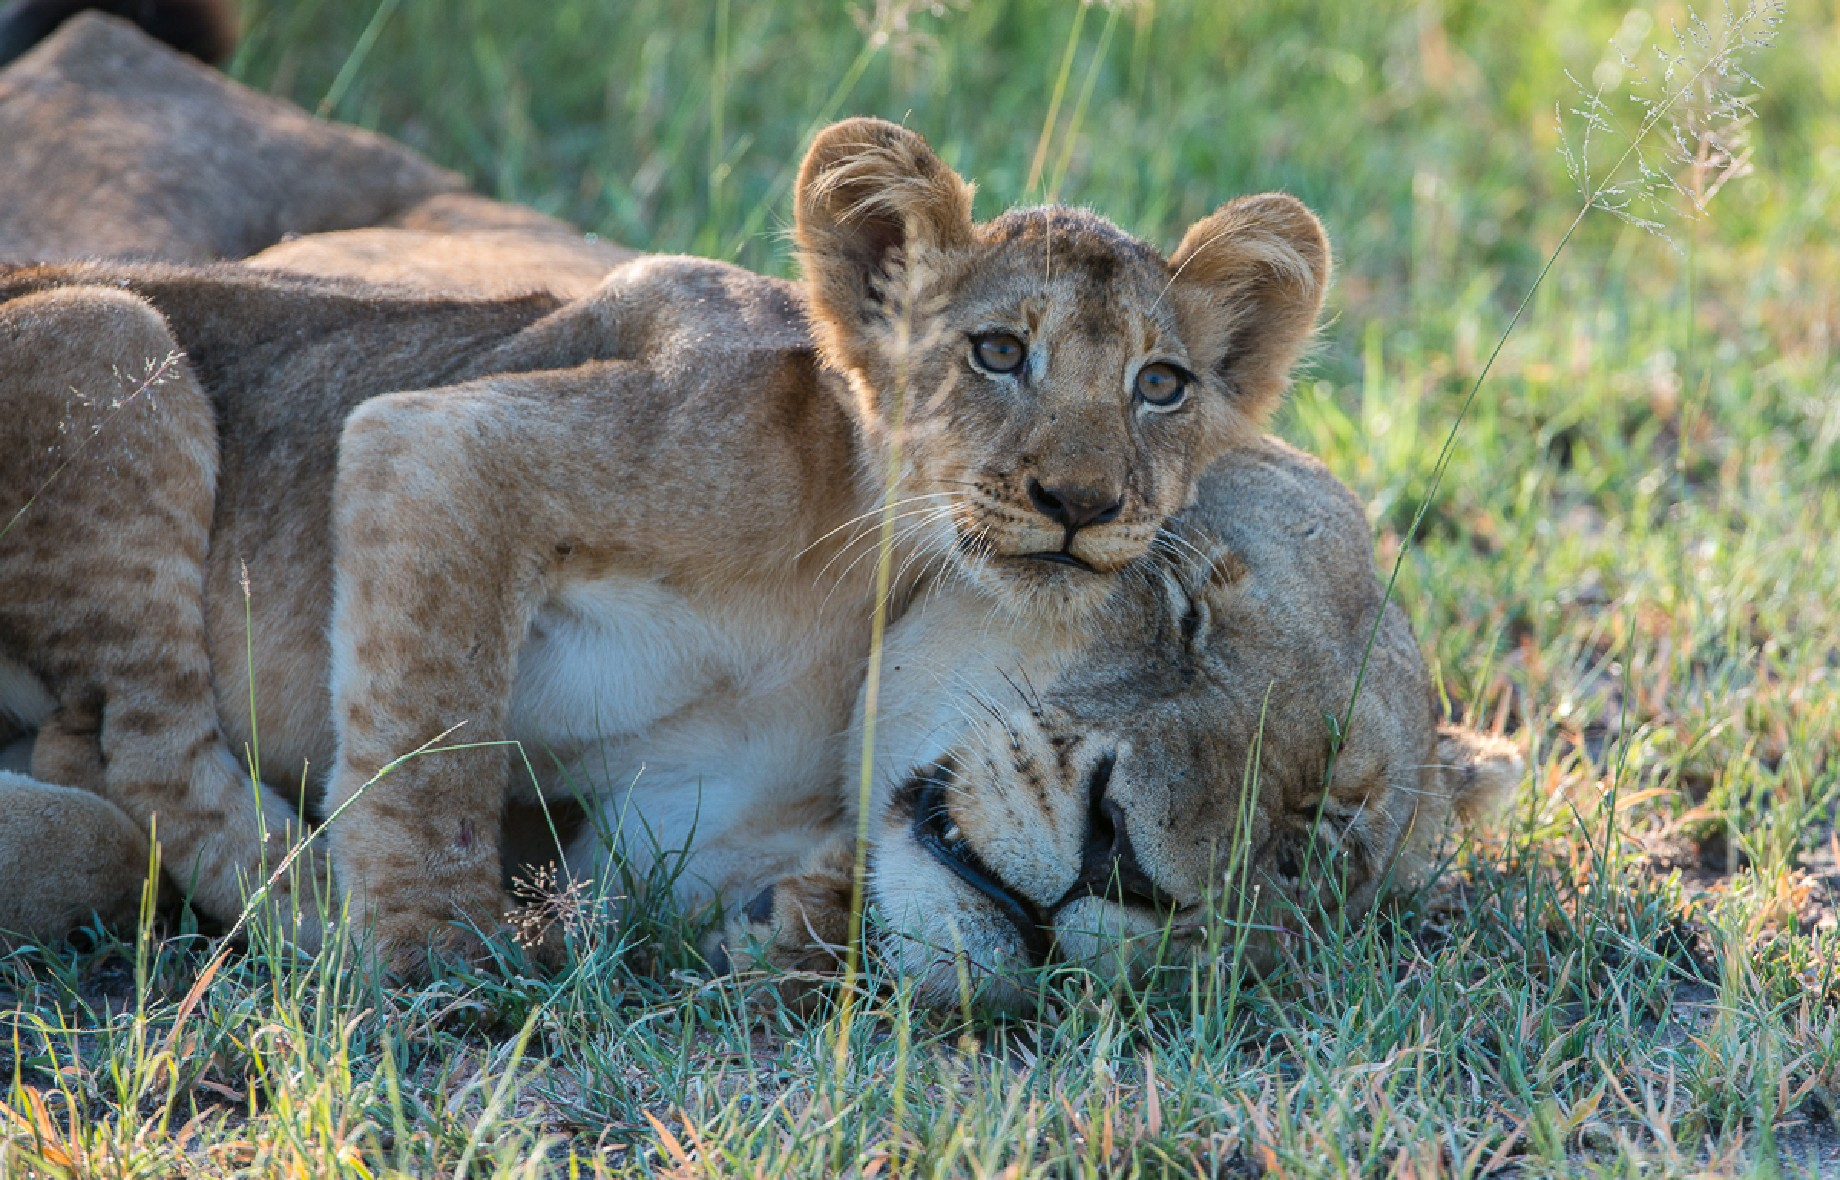 a lioness and her cub sleeping